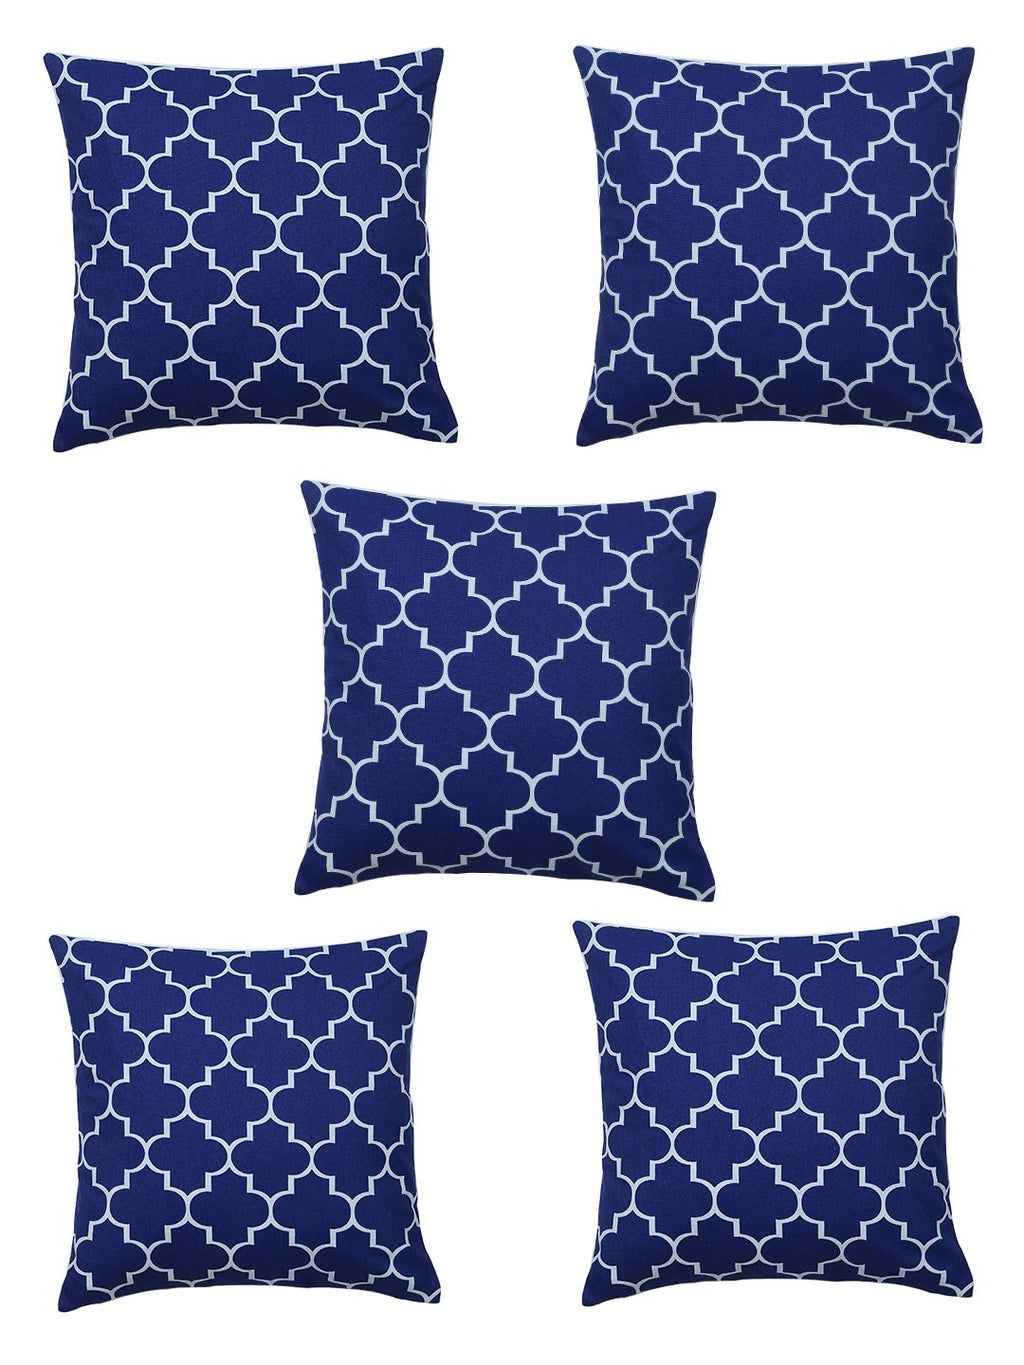 cushion covers online in india